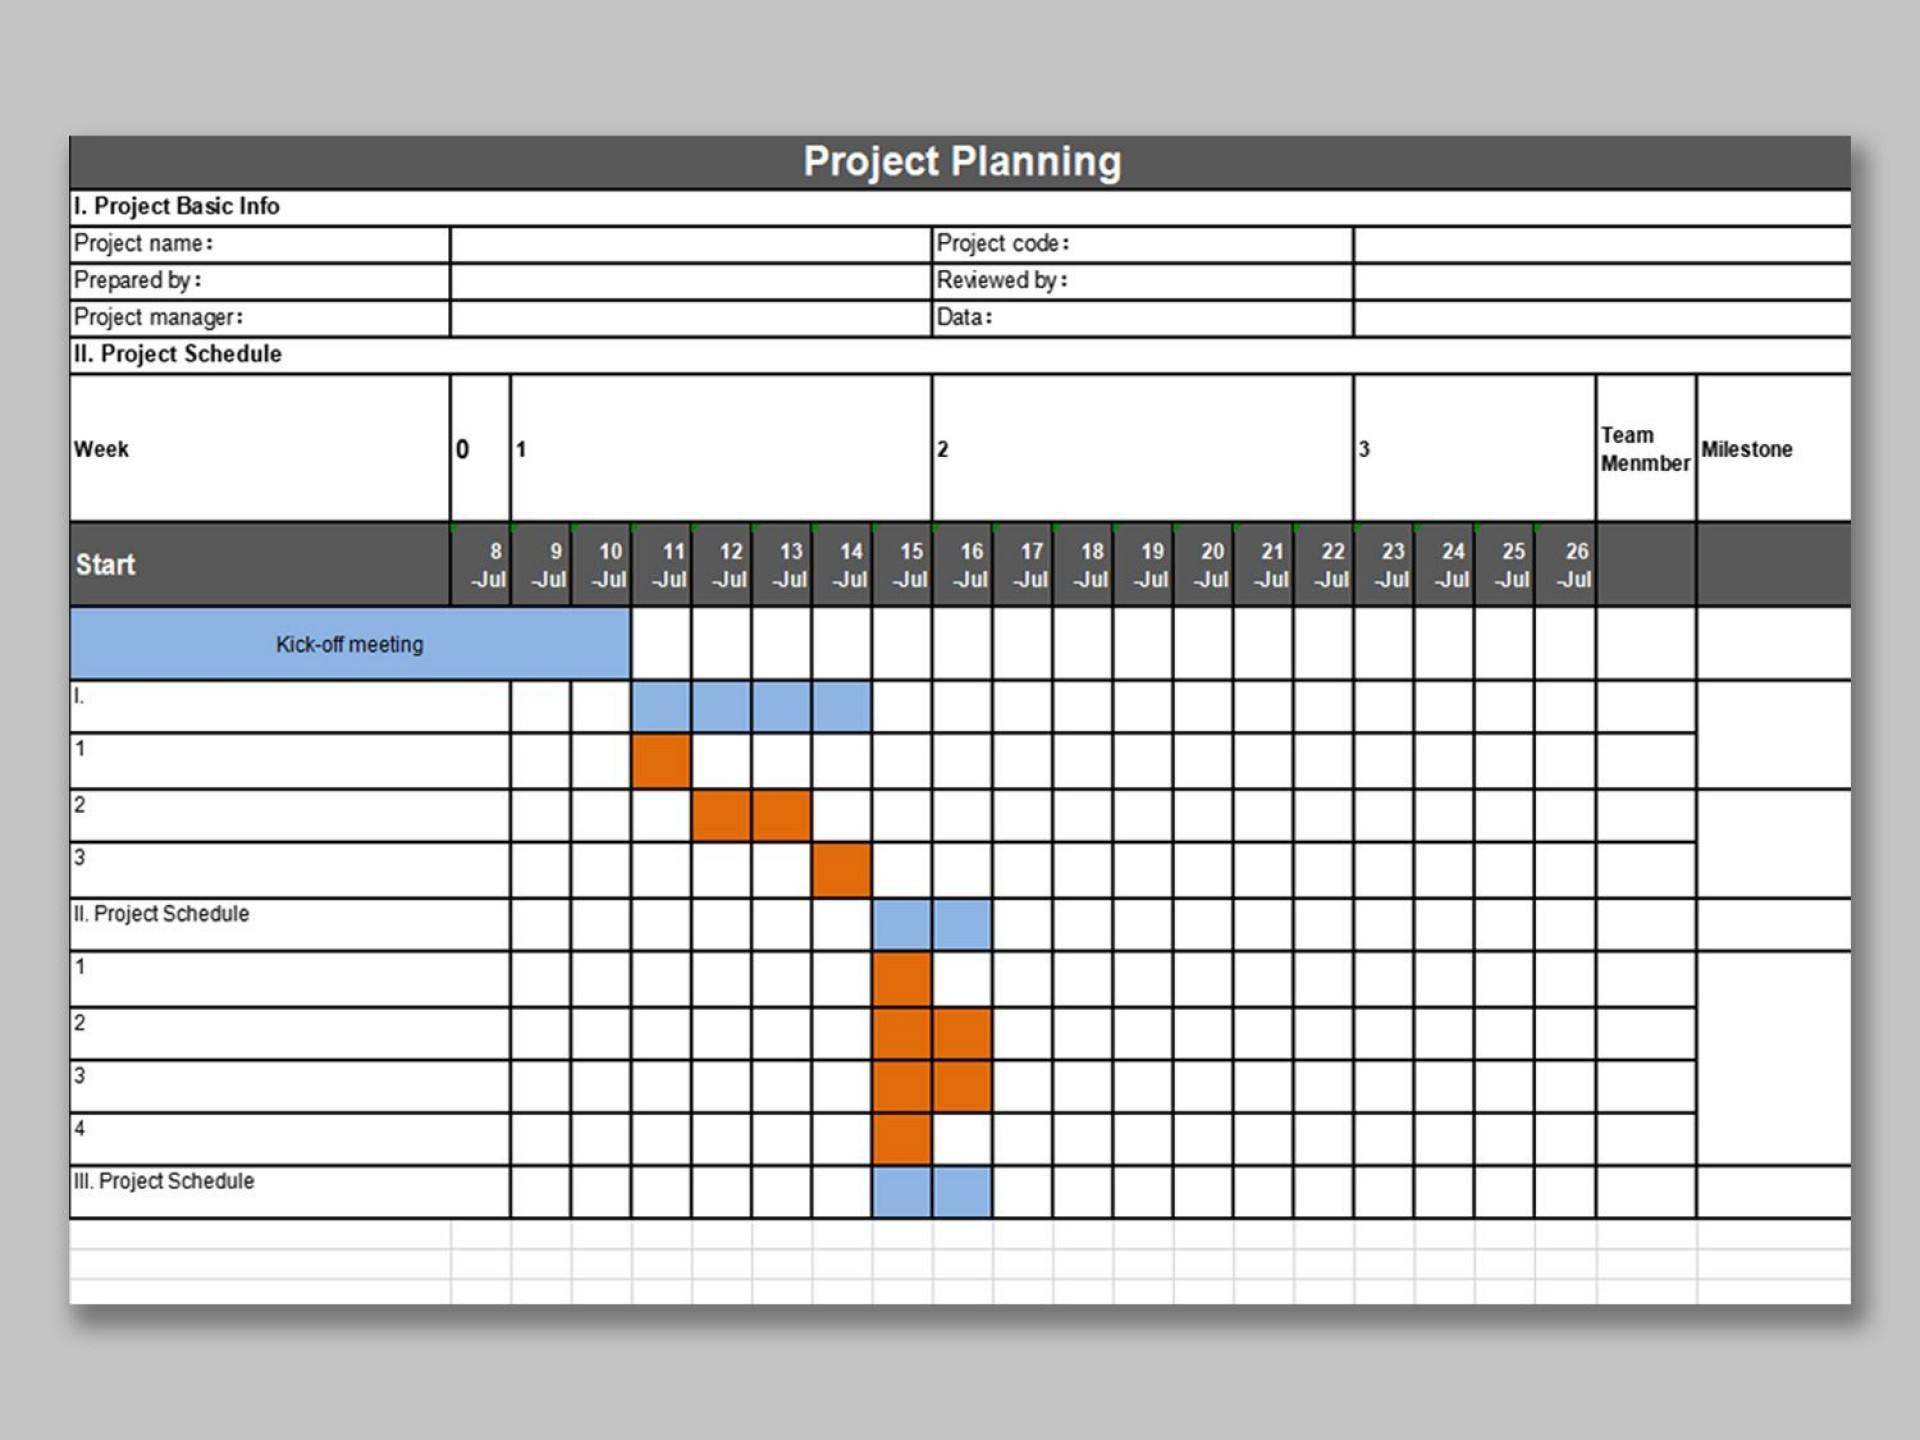 004 Striking Project Kickoff Meeting Template Xl High Resolution  Xls Excel1920